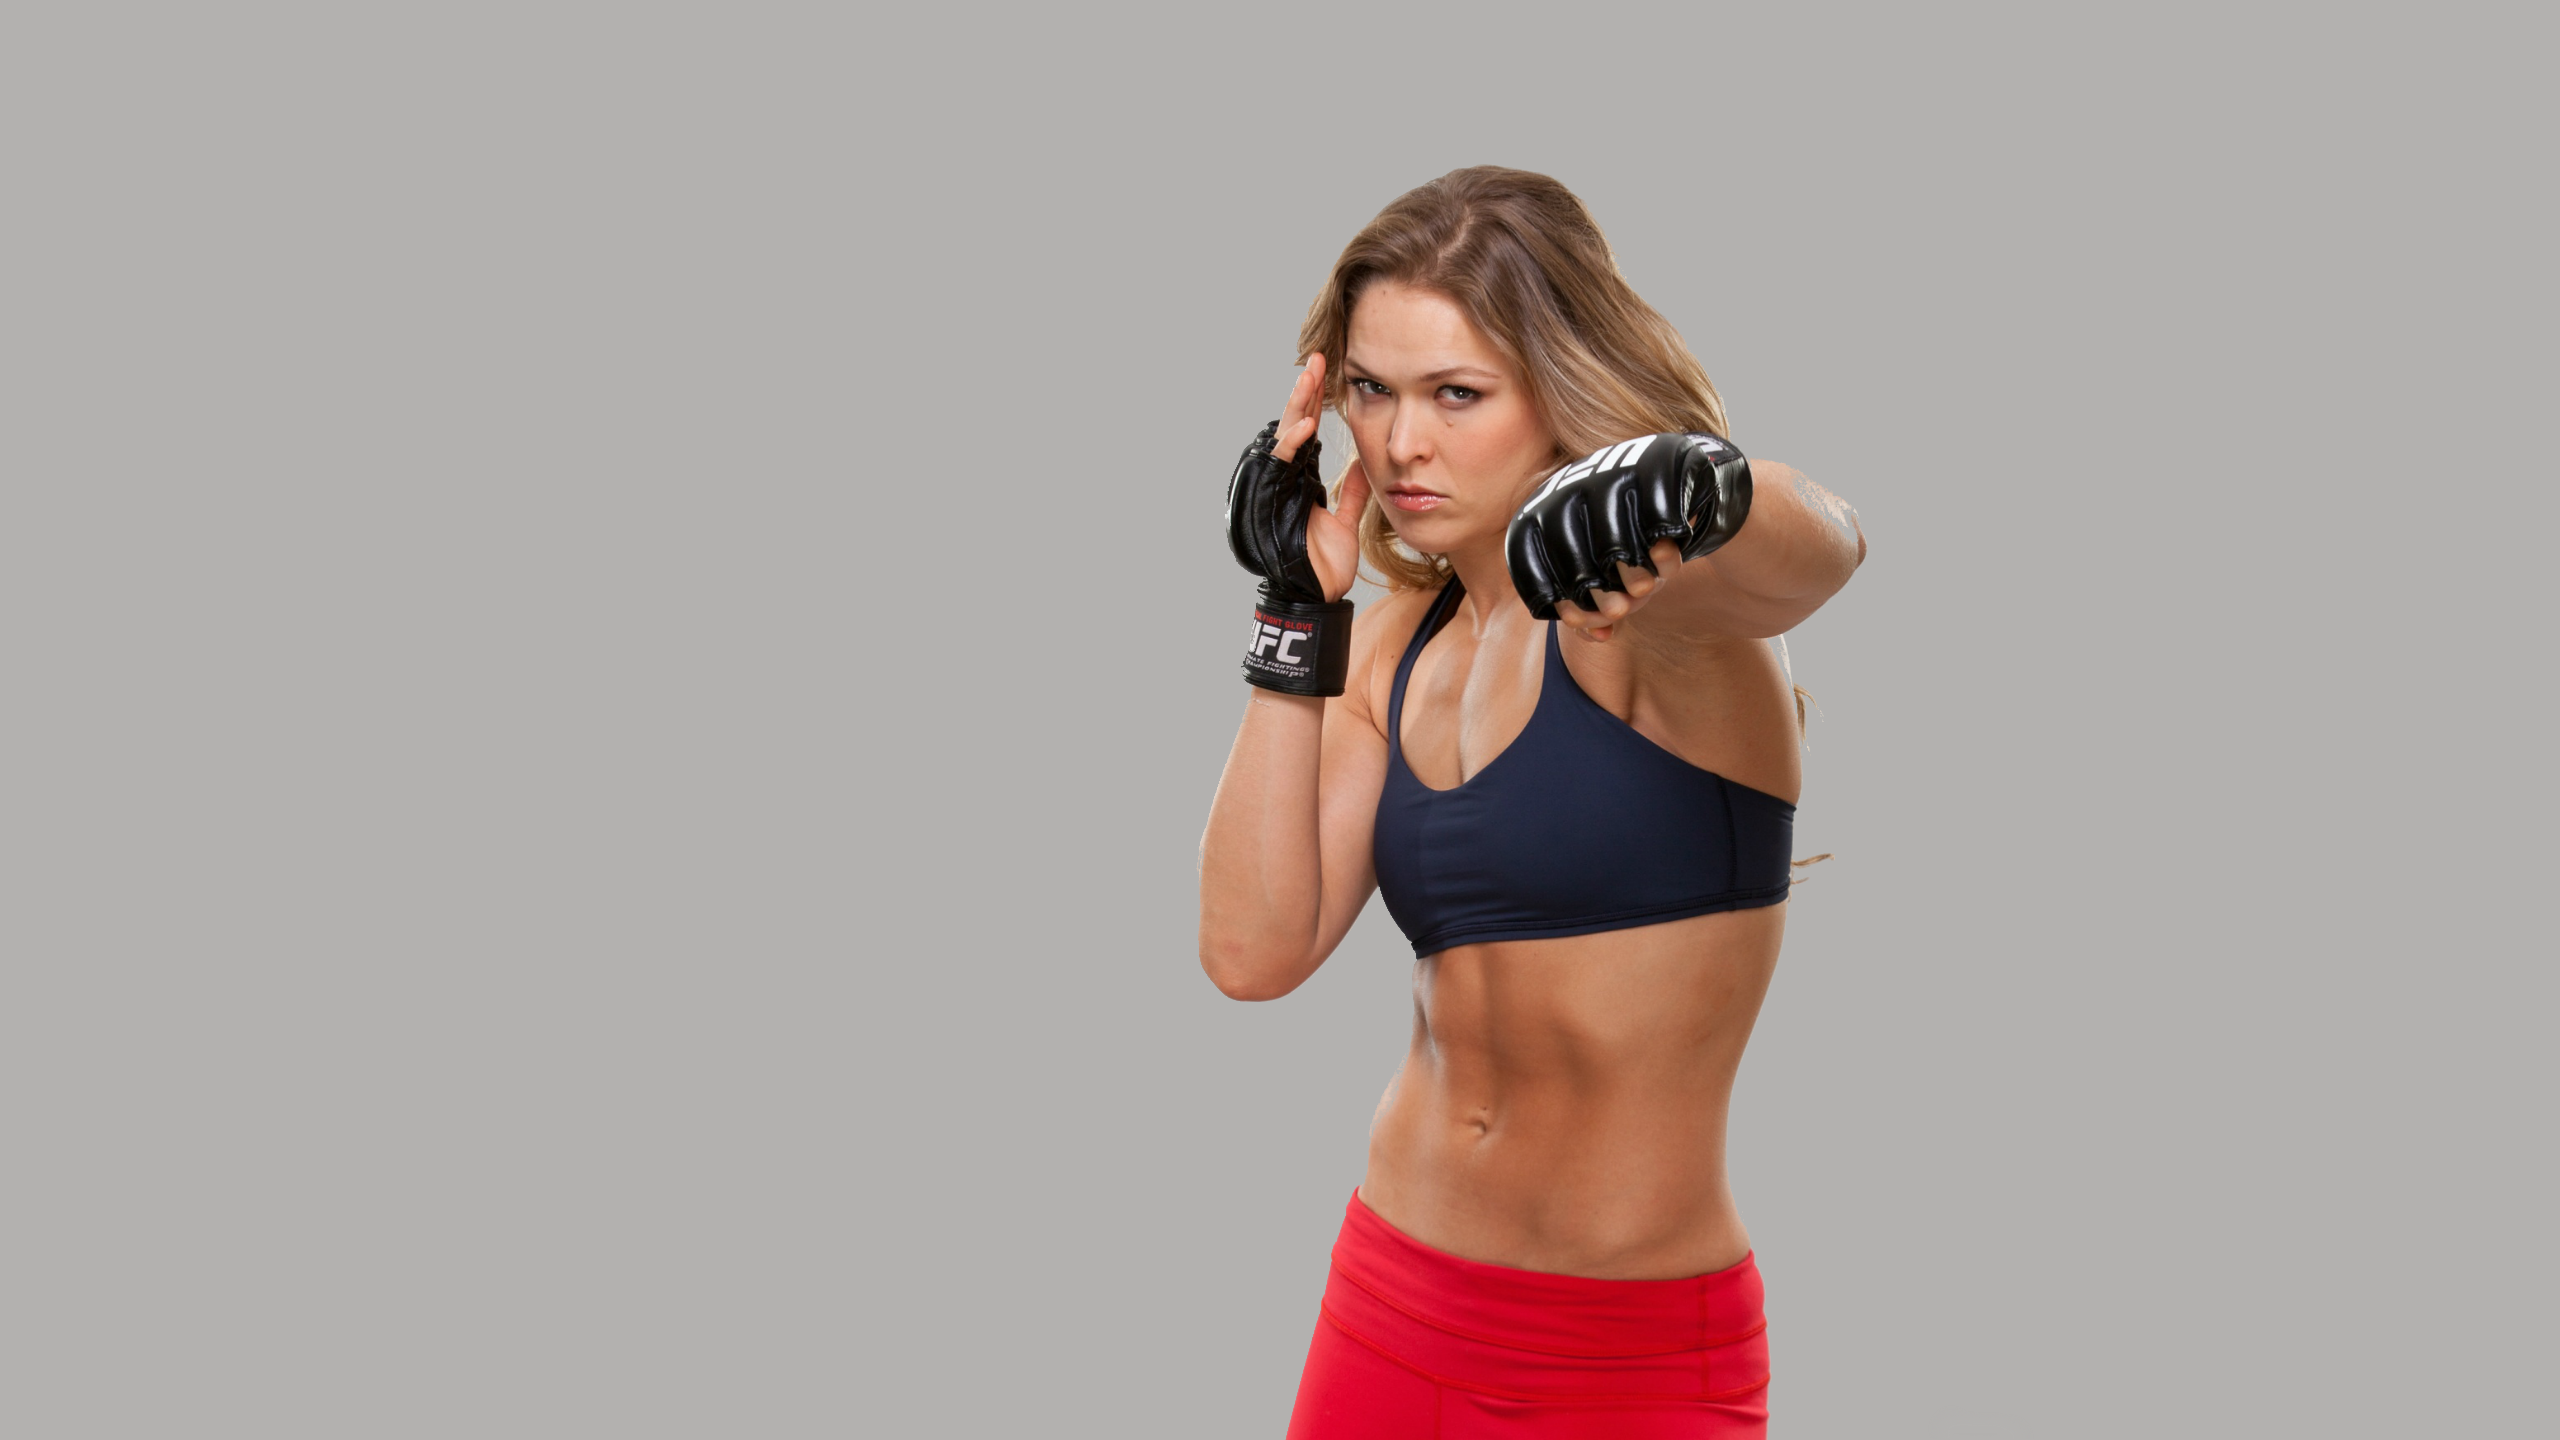 Ronda Rousey Wallpapers Images Photos Pictures Backgrounds